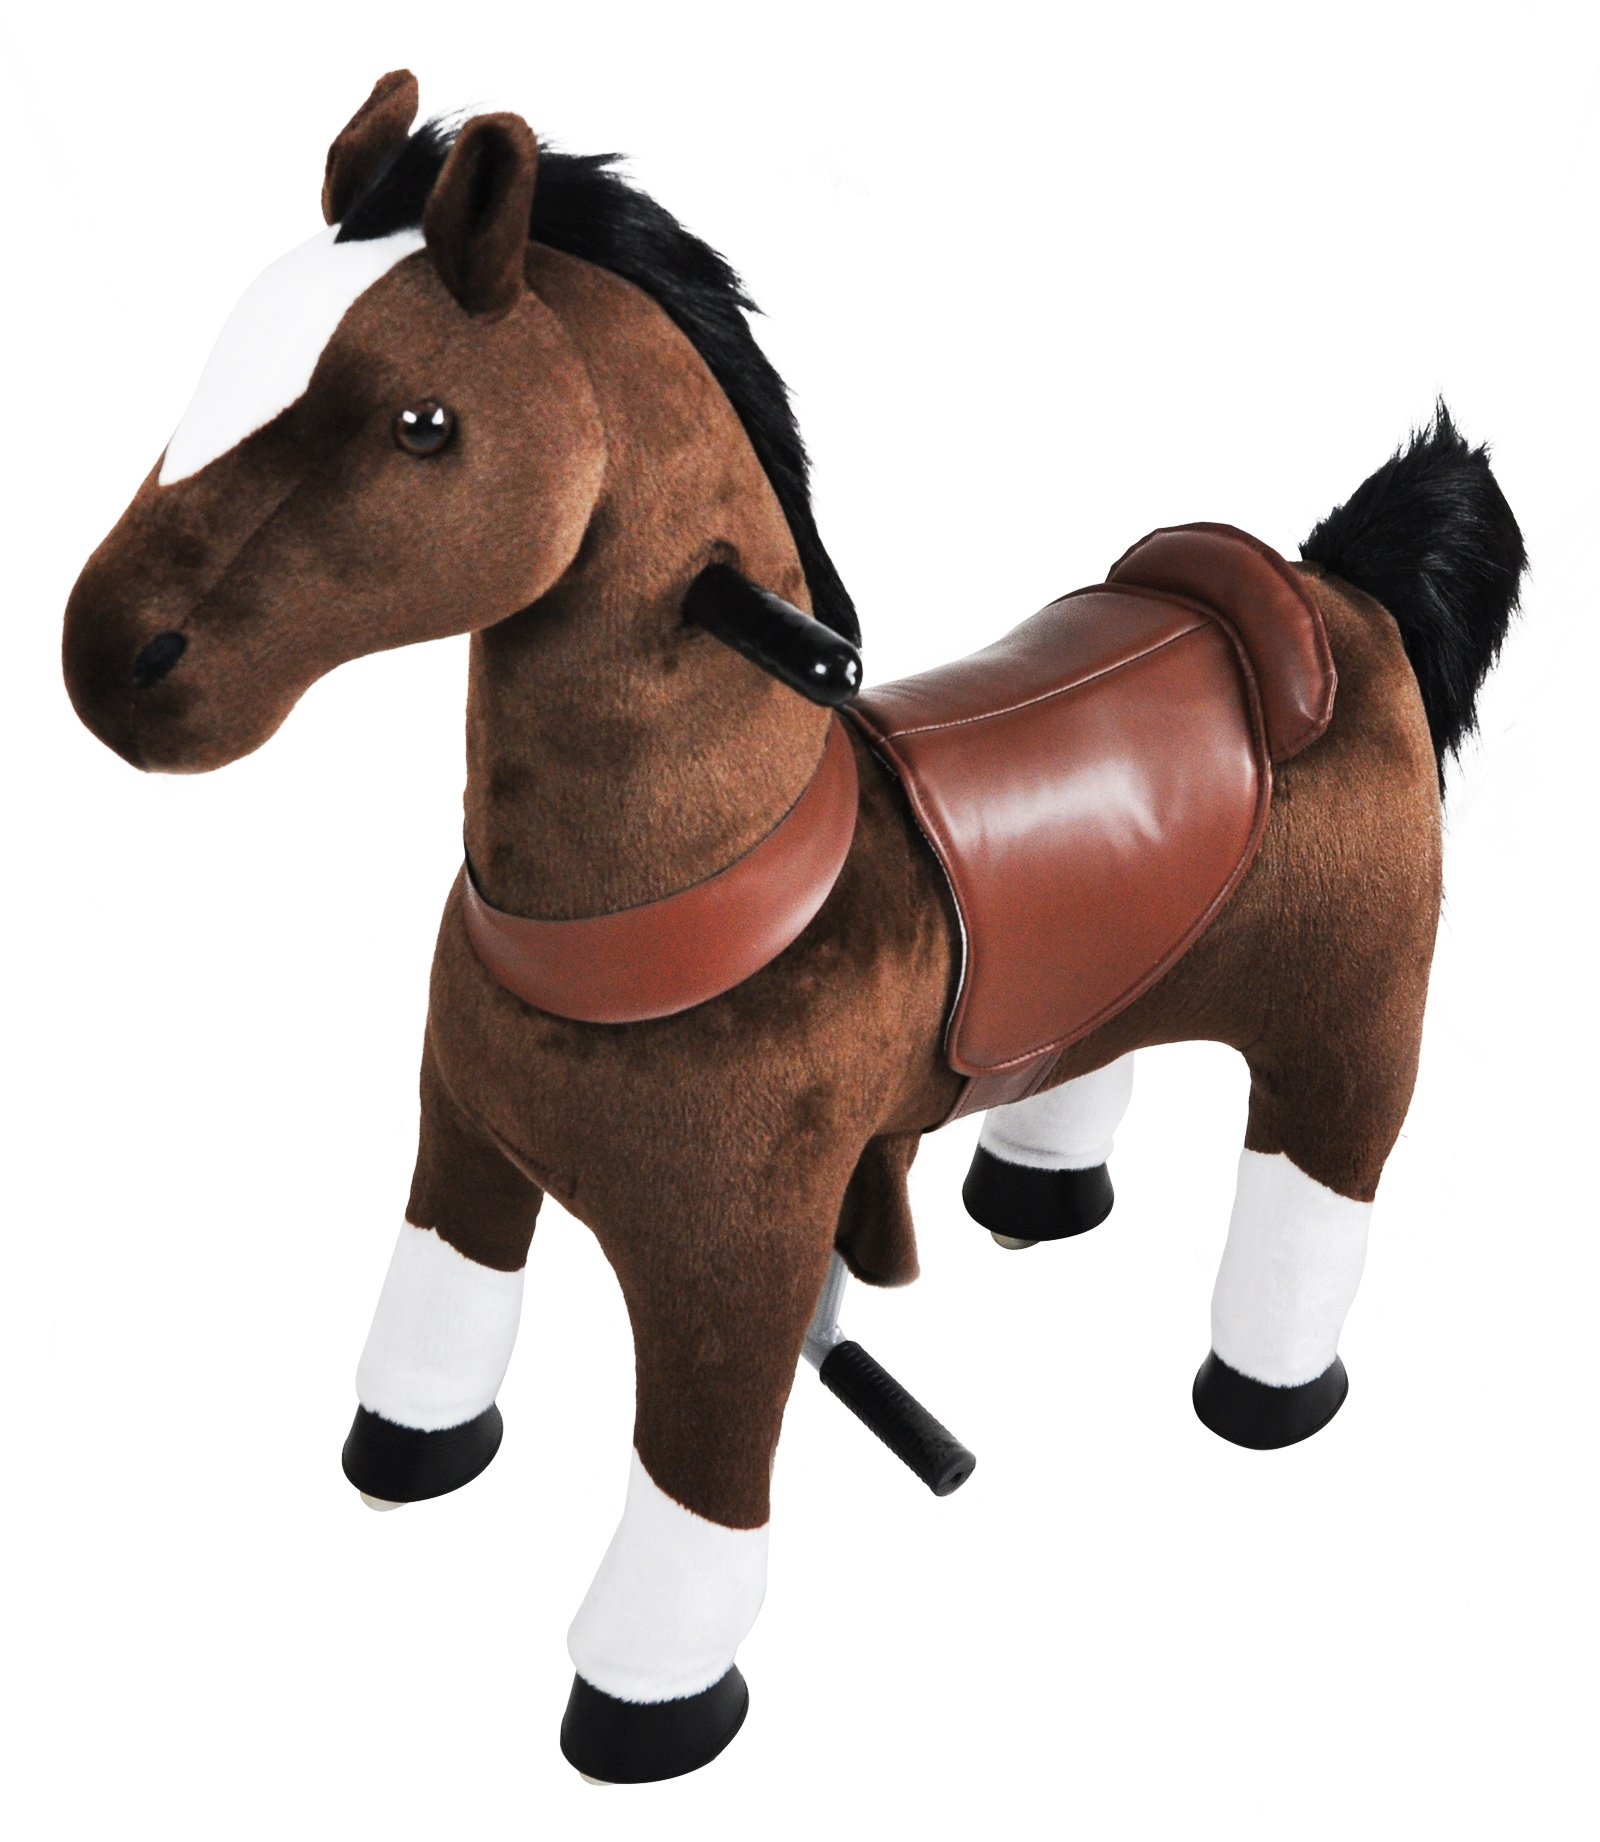 Mechanical Riding Horse Toy Simulated Horse Riding on Toy Ride-on Cycle Toys :More Comfortable Riding with Gallop Motion for Kids 3-6 Years